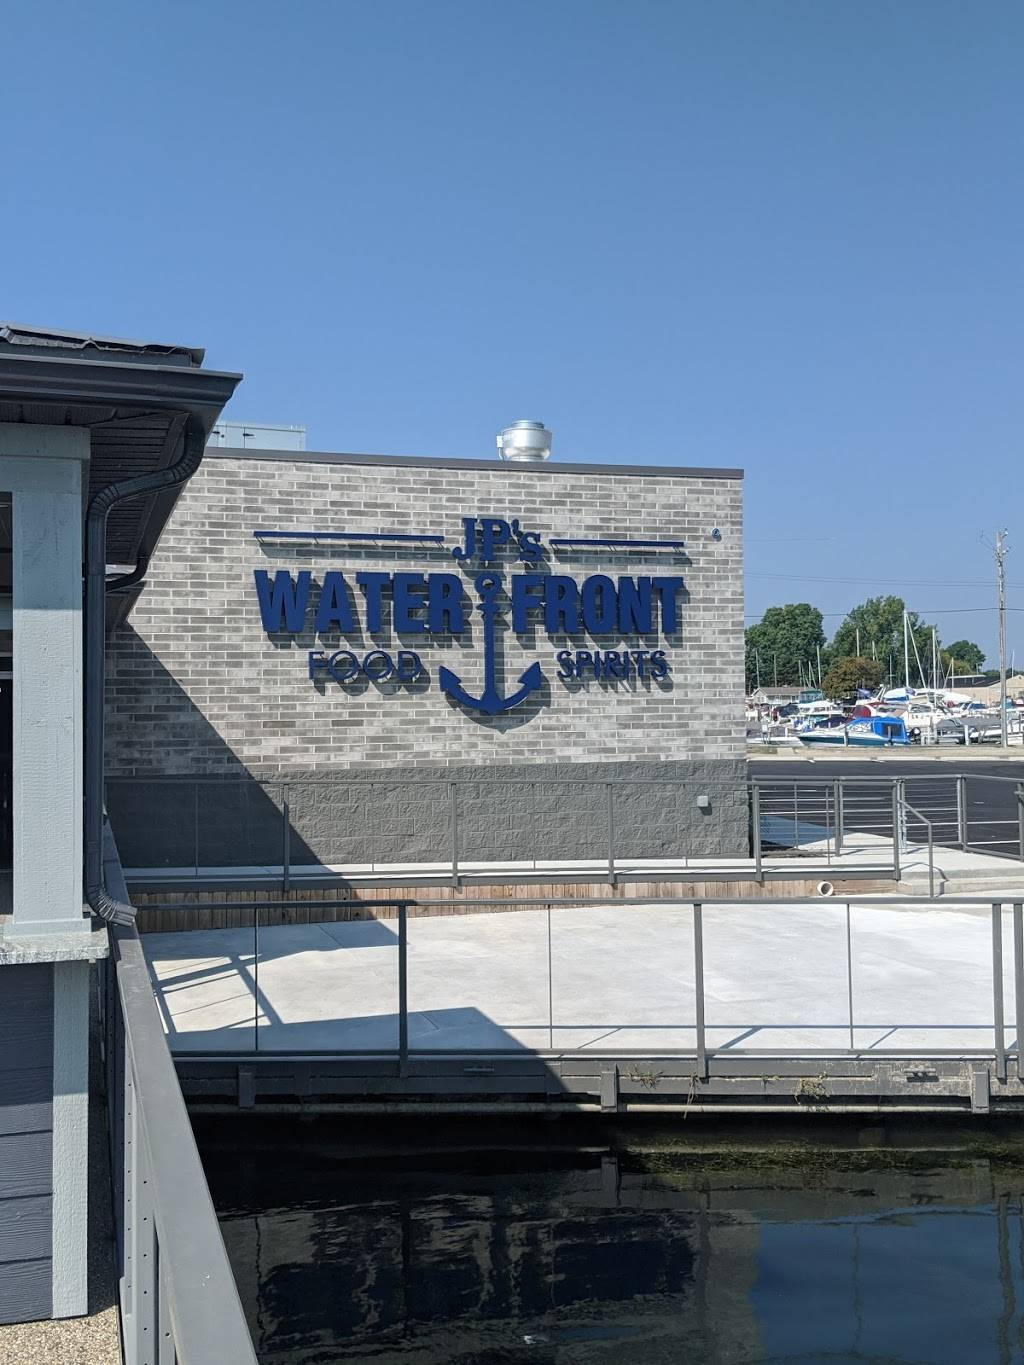 JPs Waterfront | restaurant | 13200 Middle Gibraltar Rd, Gibraltar, MI 48173, USA | 7346726299 OR +1 734-672-6299